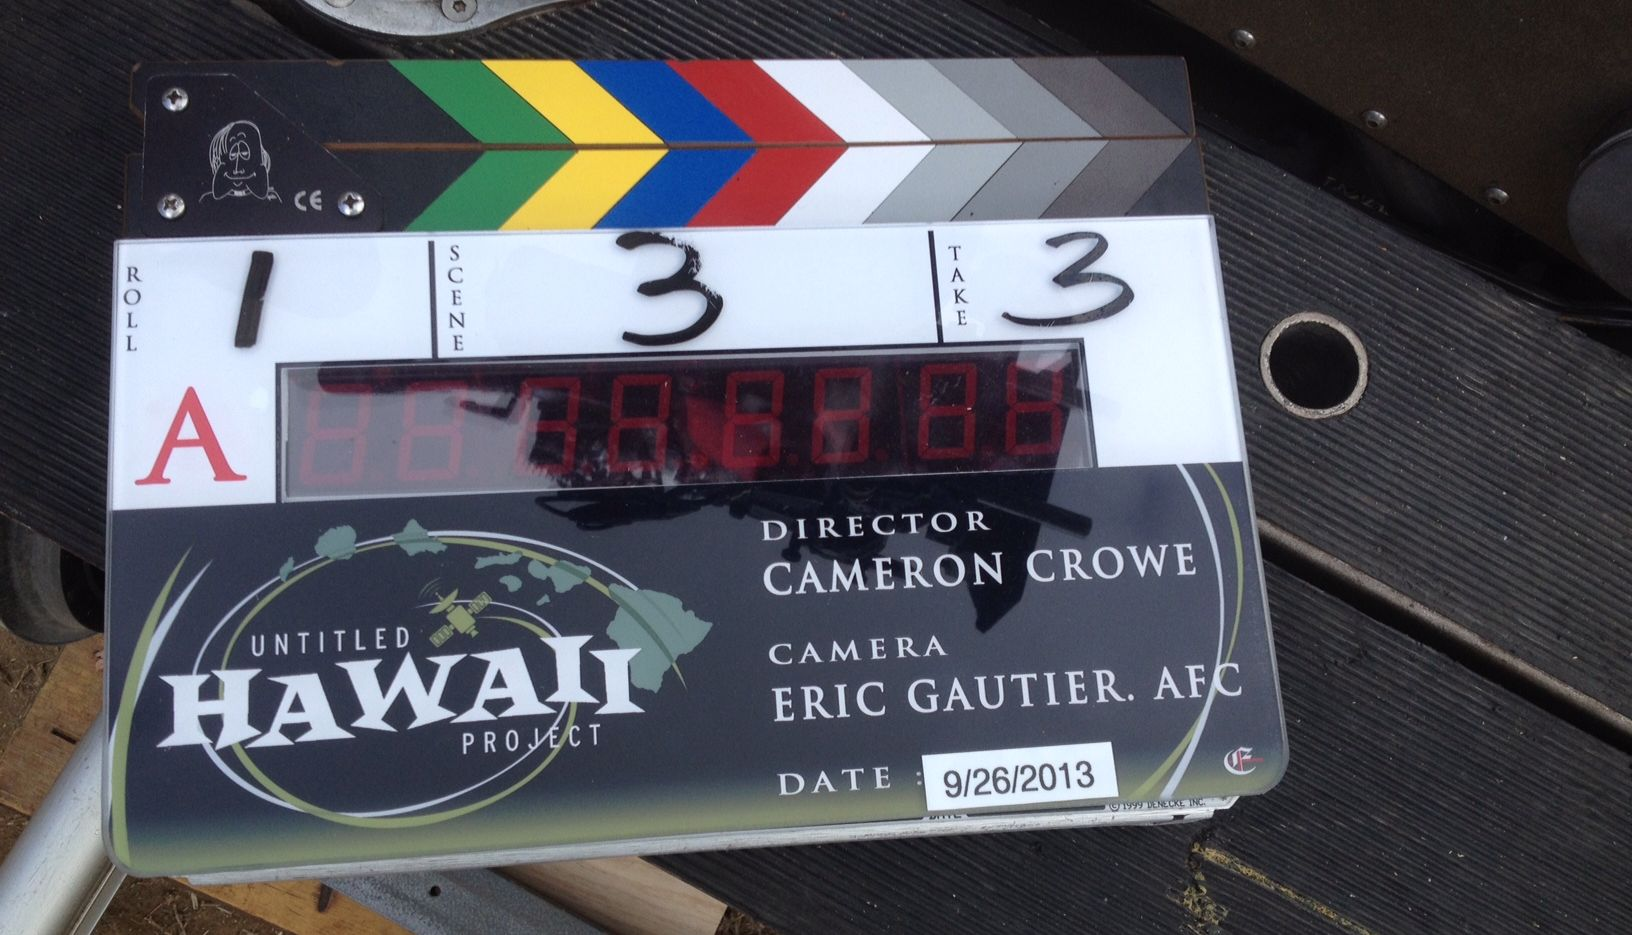 Cameron Crowe's 'Untitled Hawaii Project' Delayed Until 2015